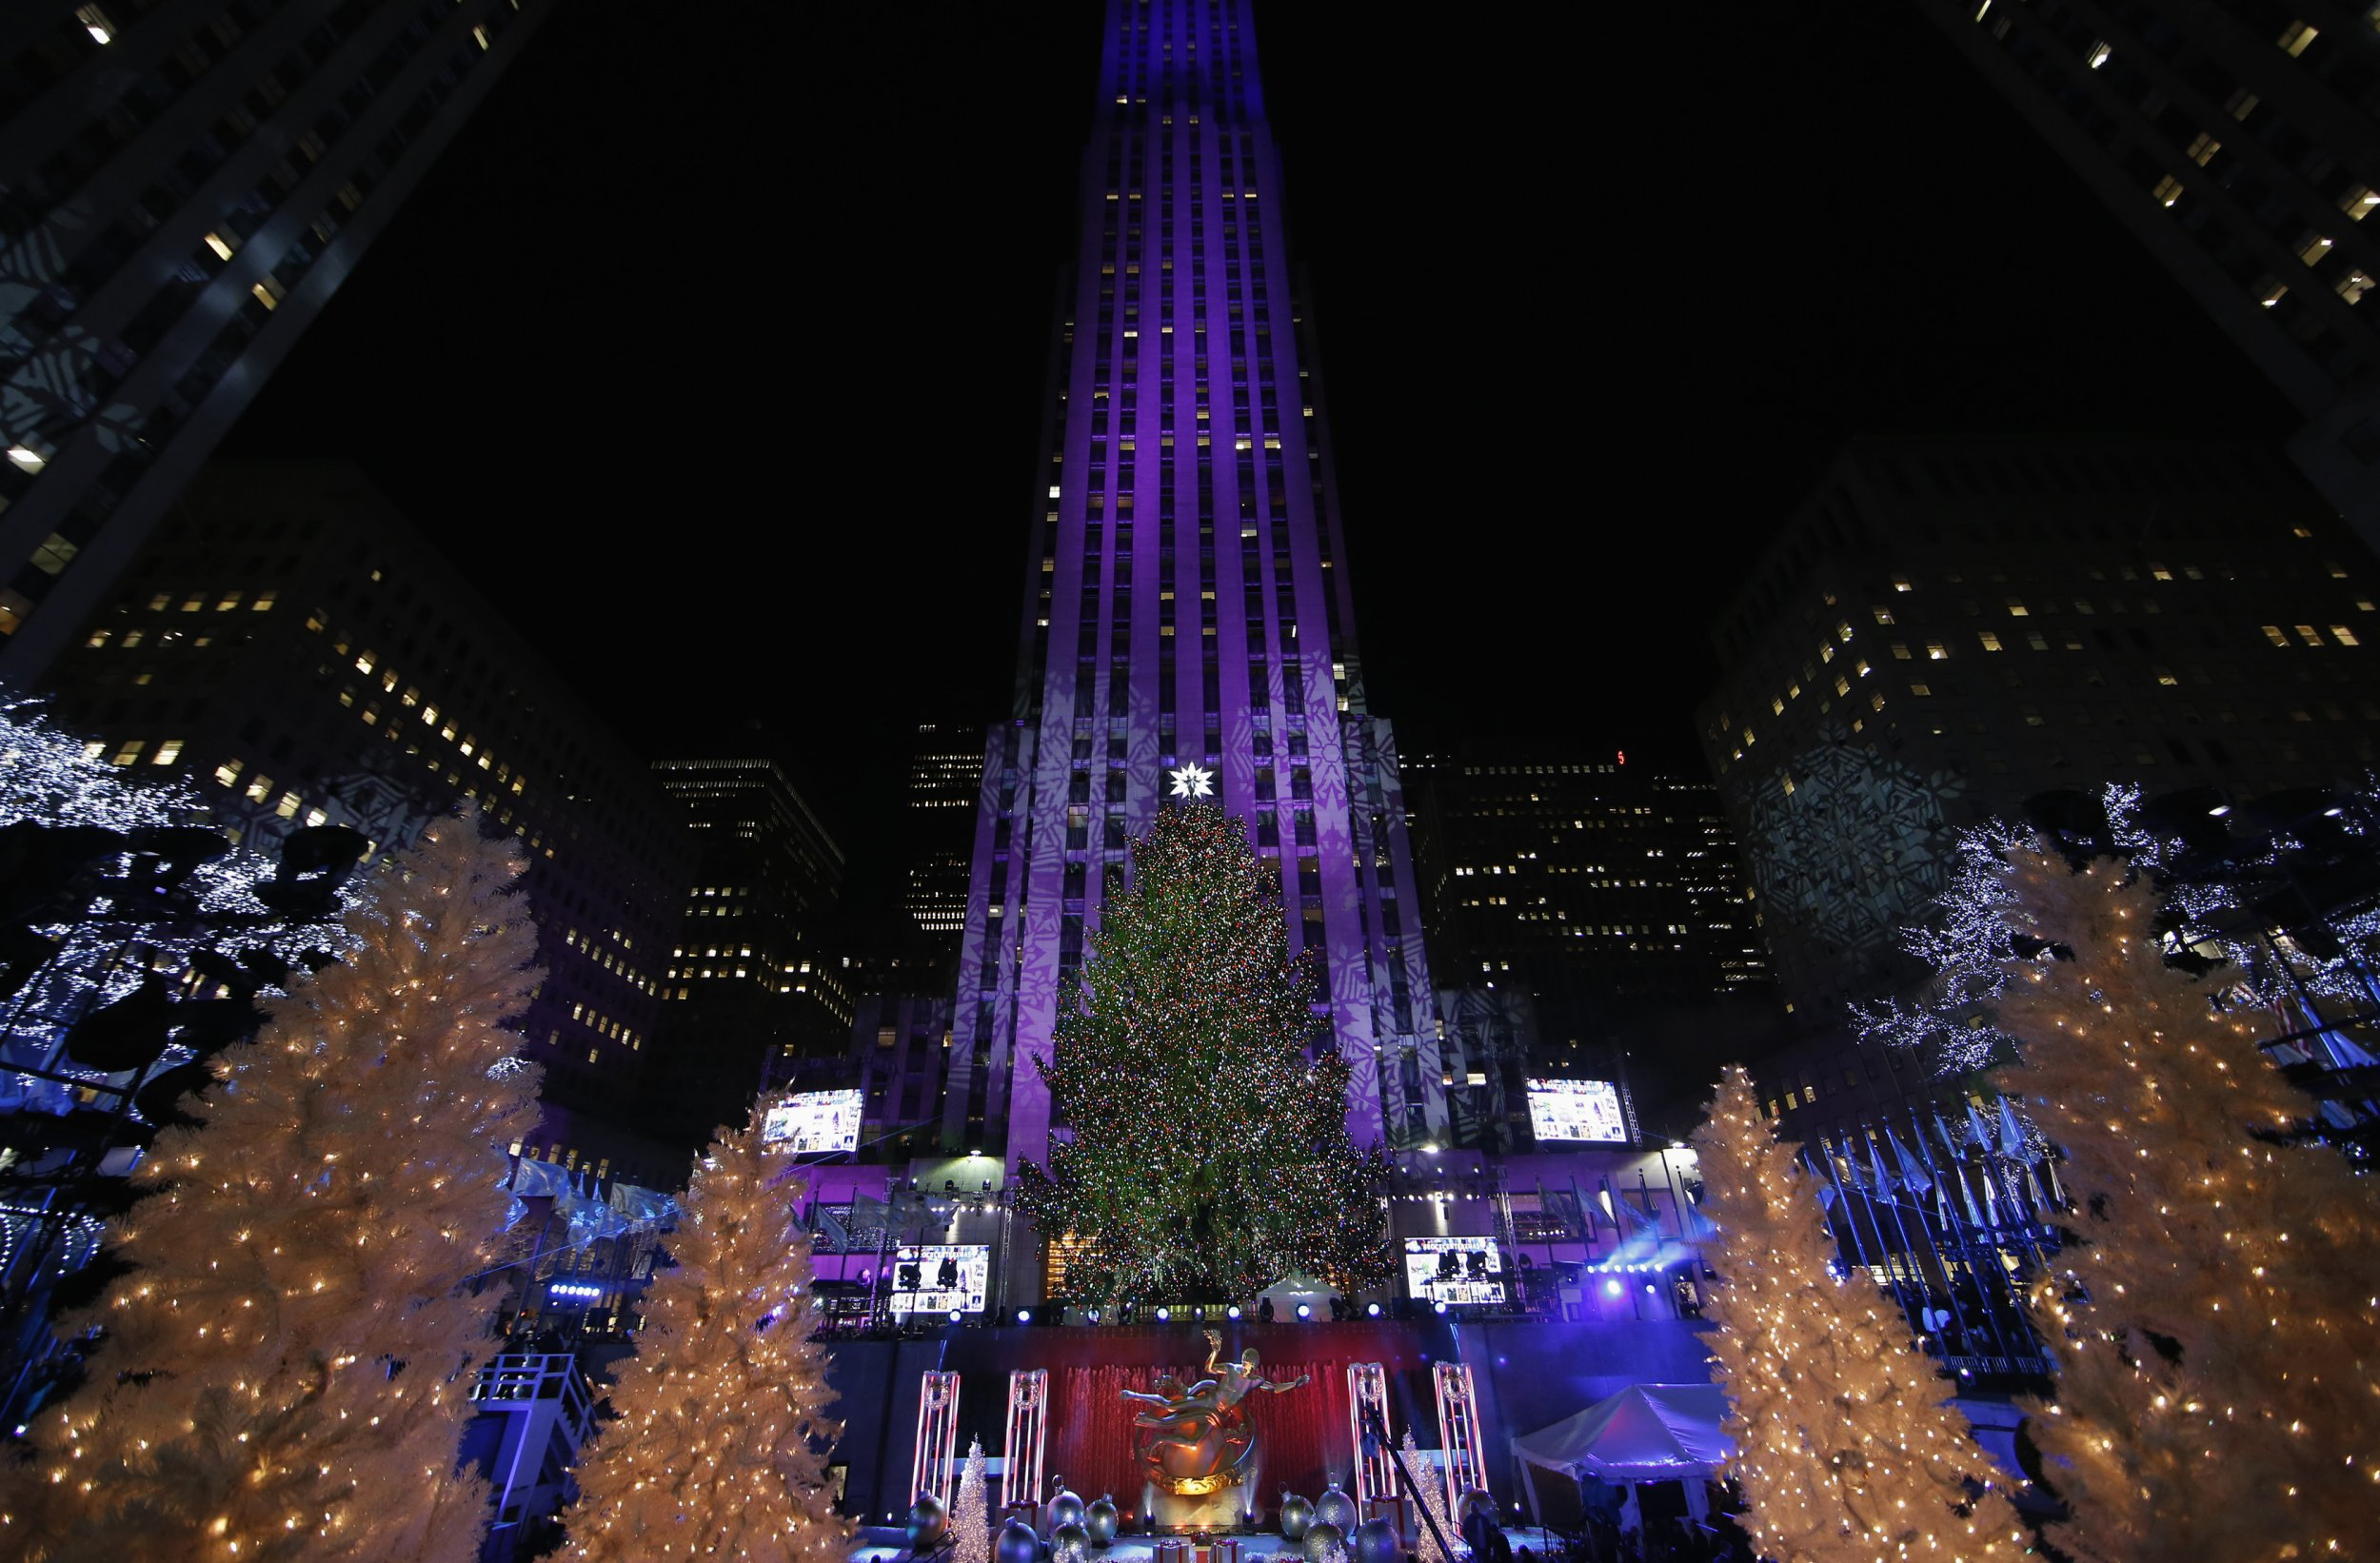 Photos: It's Beginning to Look a Lot Like Christmas